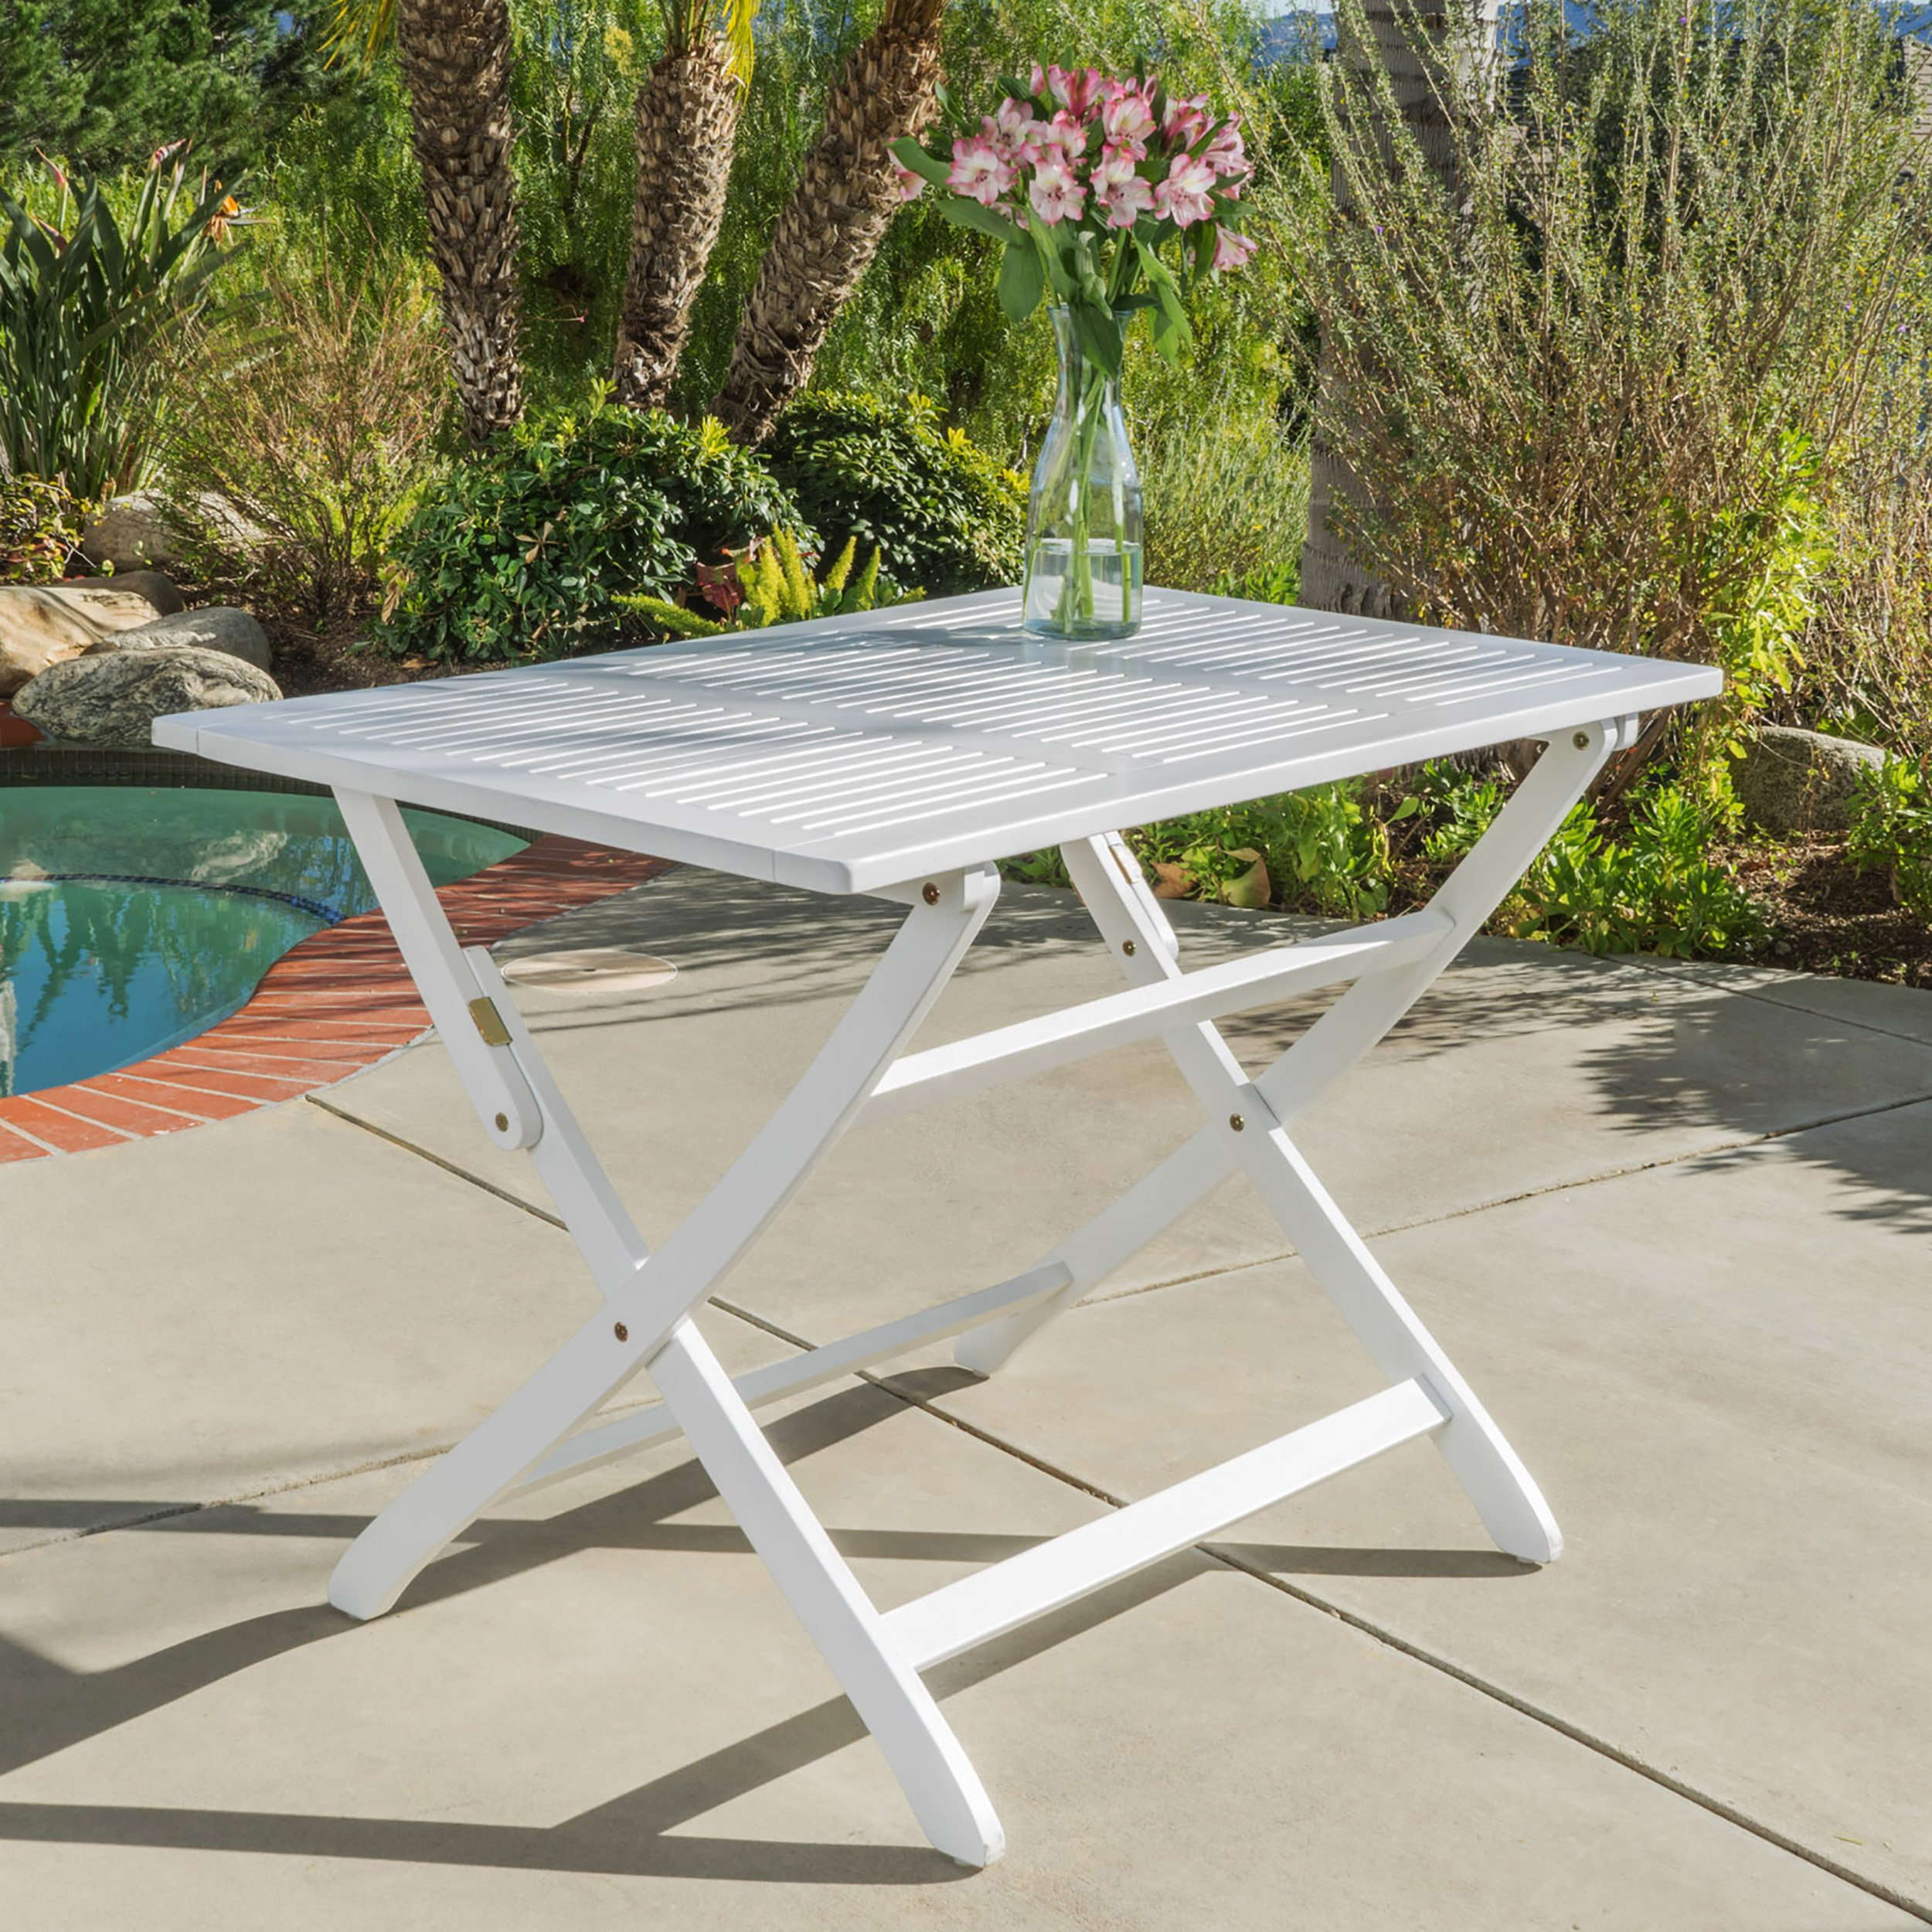 Christopher Knight Home St. Nevis   Acacia Wood Outdoor Foldable Dining Table   Perfect for Patio   with White Finish